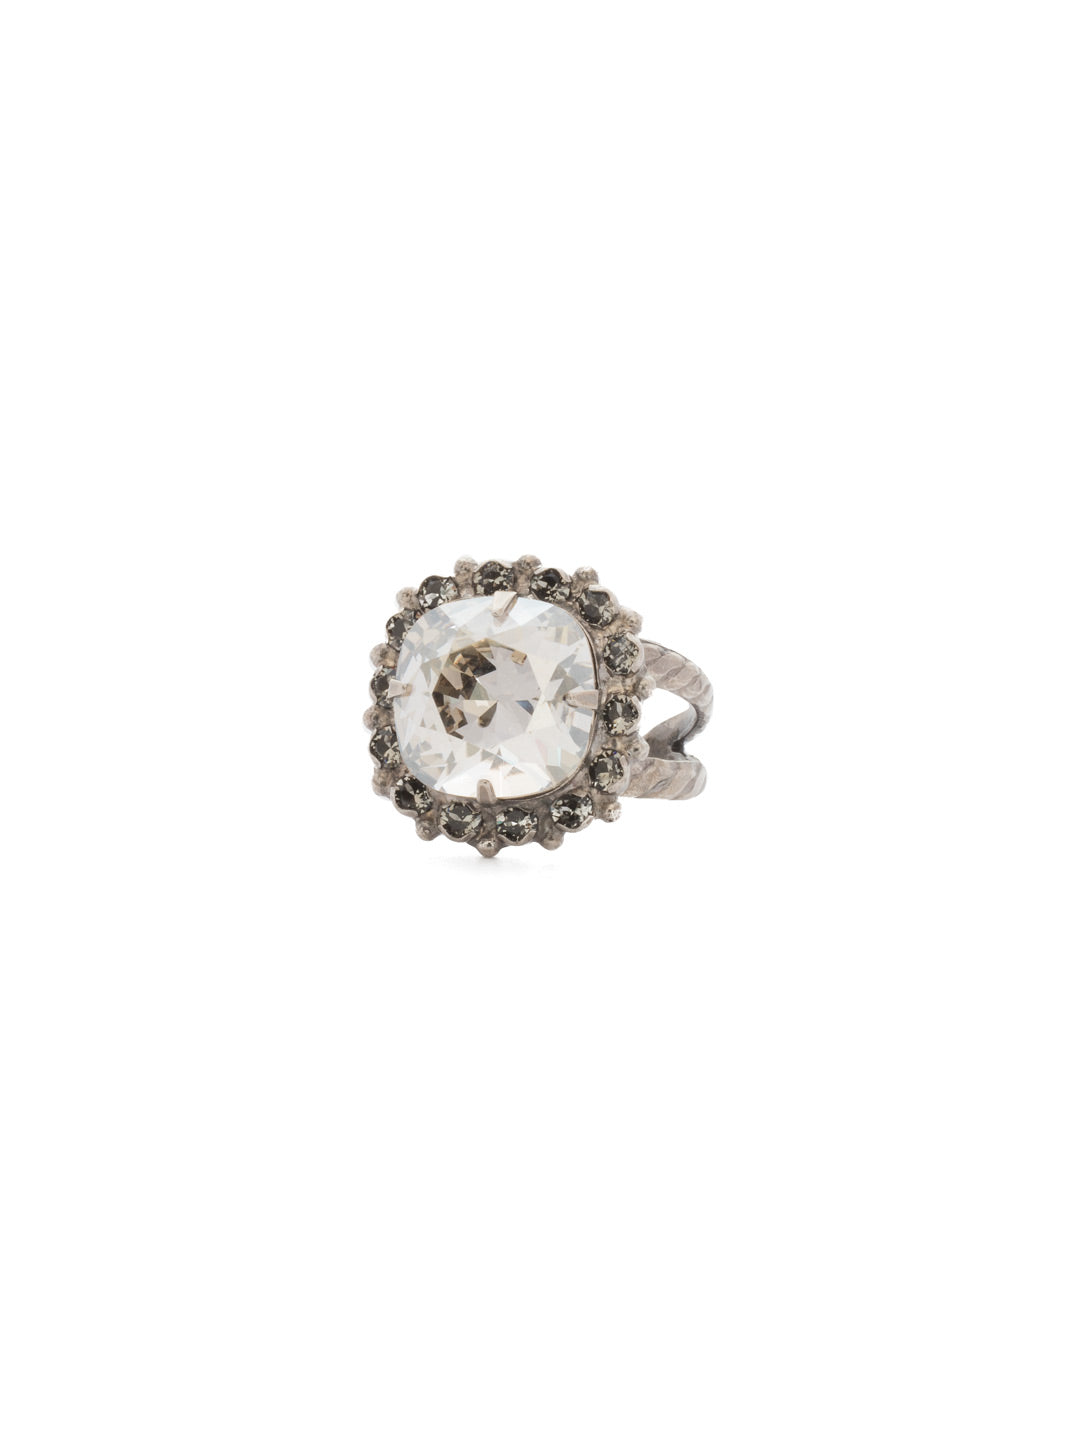 Cushion-Cut Cocktail Ring - RCR112ASCRO